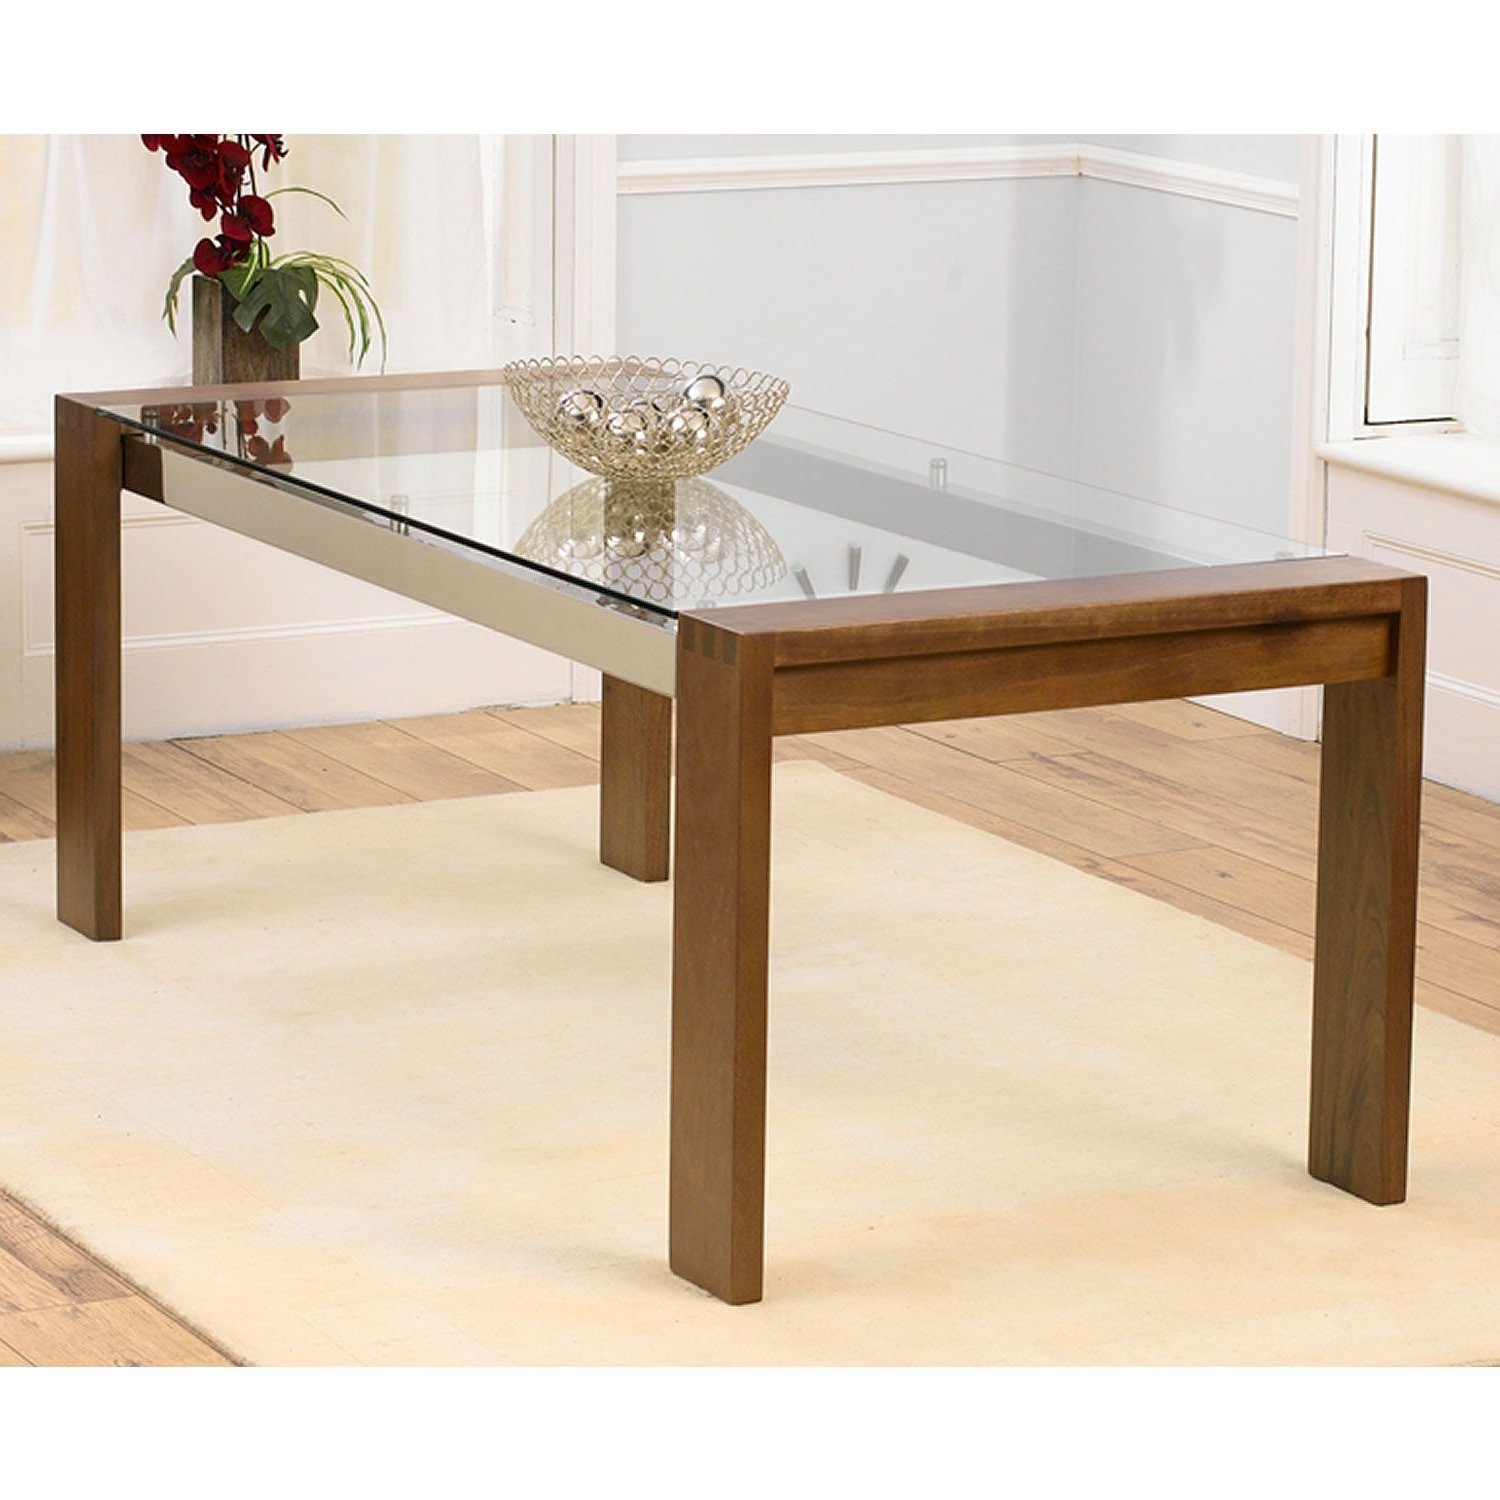 Glass Dining Tables With Wooden Legs In Well Known Image Result For Wooden Legs Glass Table Top (View 2 of 25)